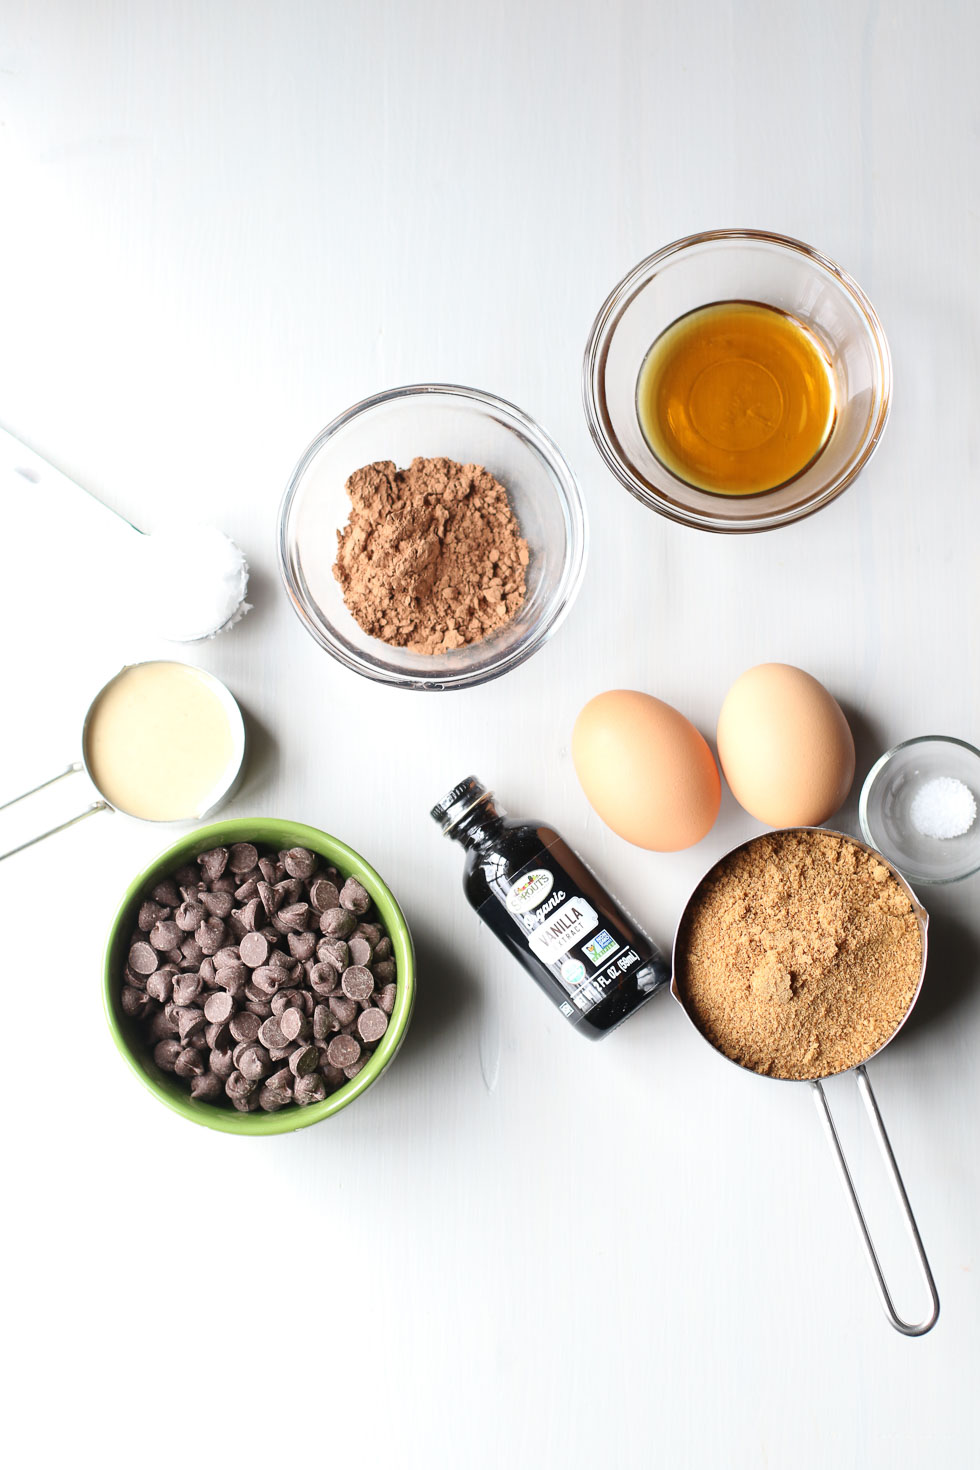 Ingredients for Flourless Tahini Brownies recipe